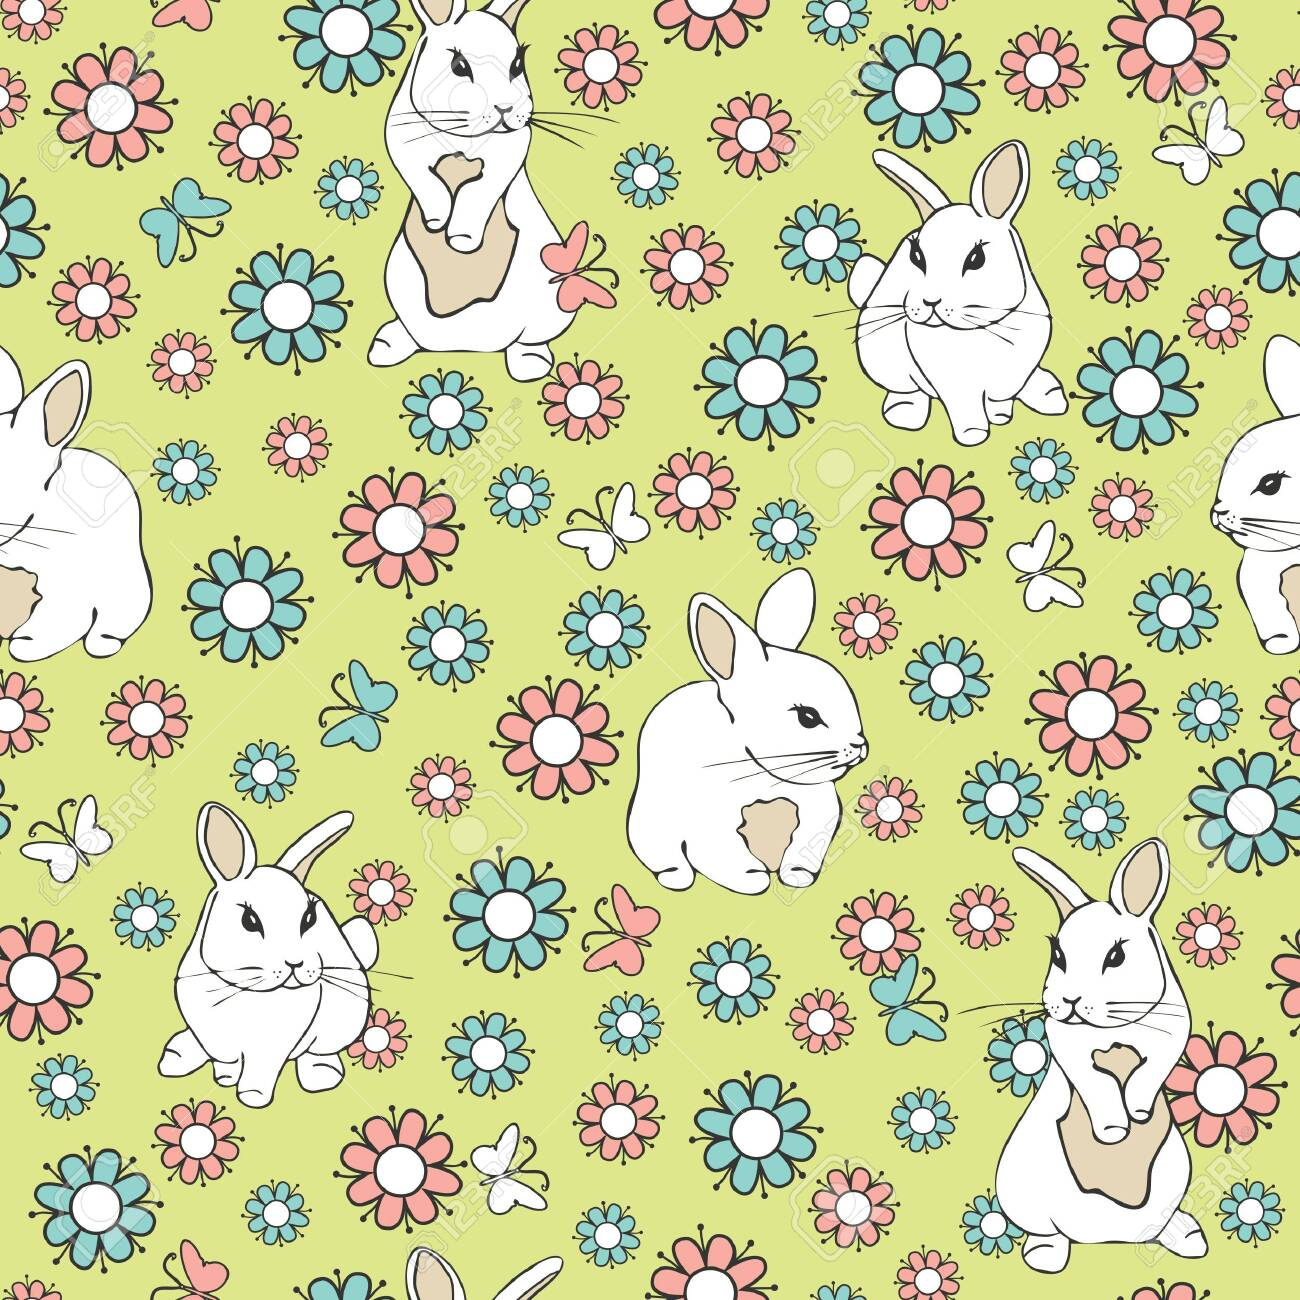 Seamless vector pattern with white bunnies and flowers on green background. Pink and blue flower animal wallpaper design. - 151113232